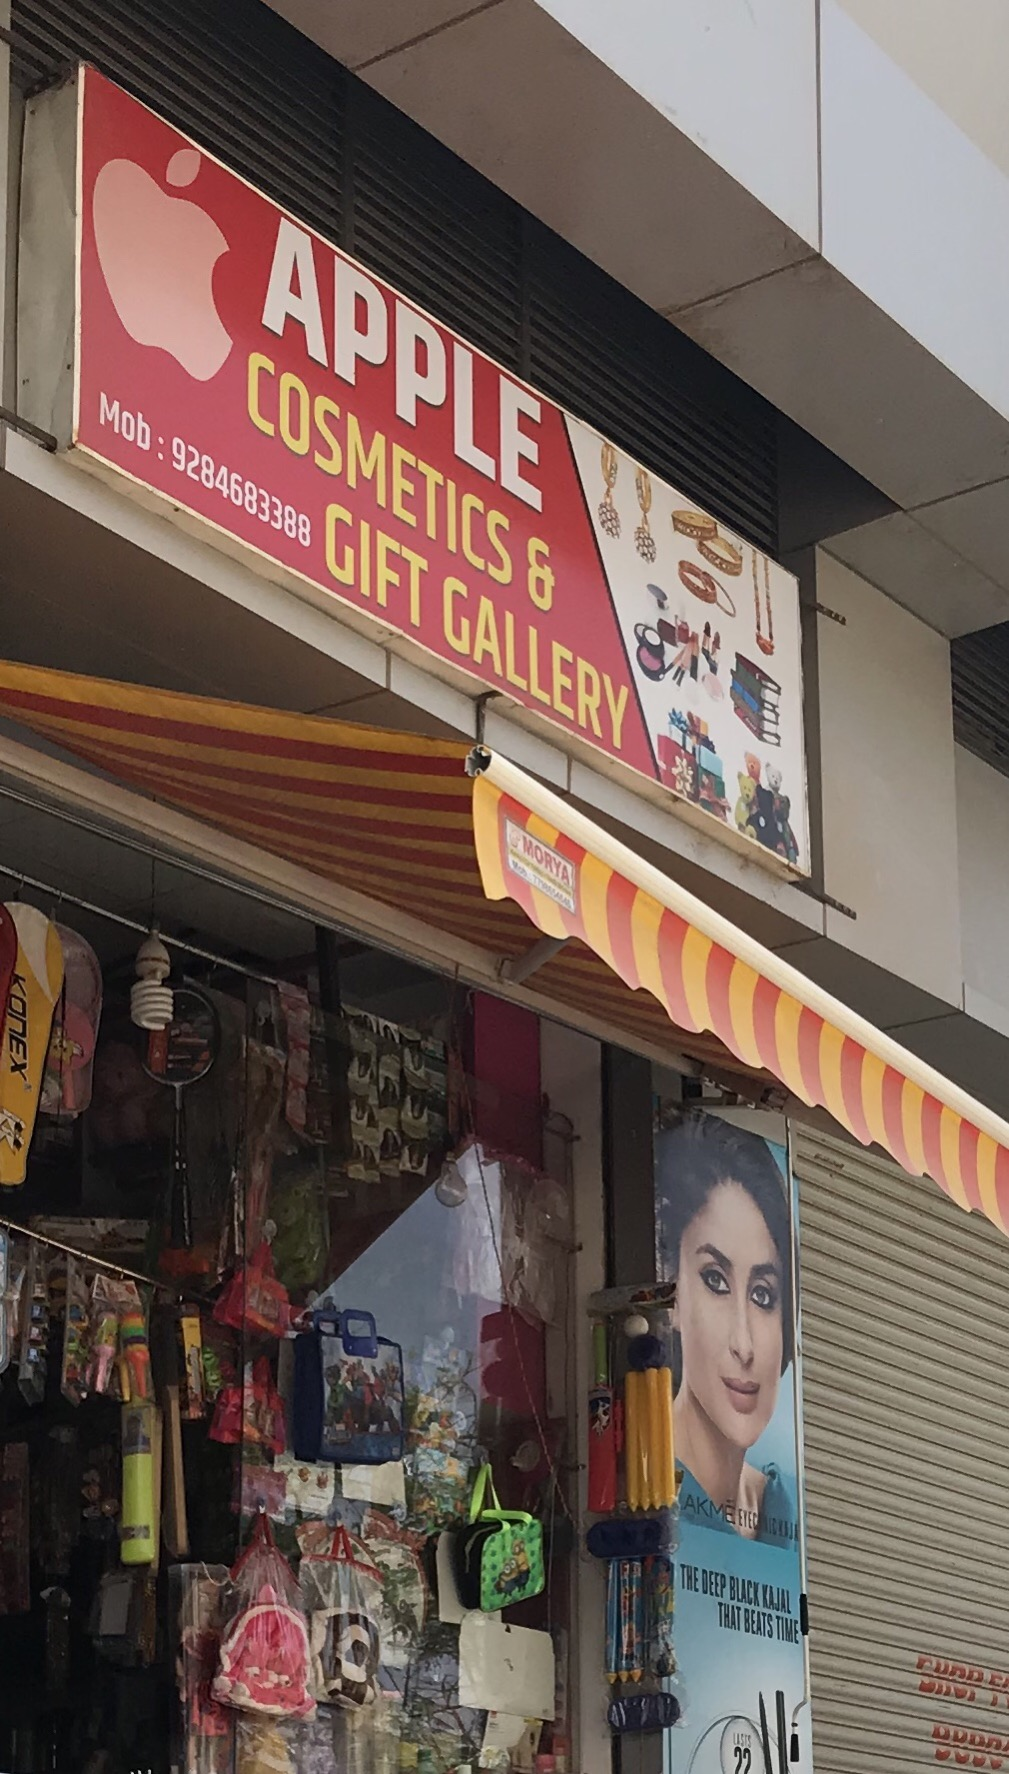 Apple cosmetic and gift store Cosmetics Shops in Wagholi Pune